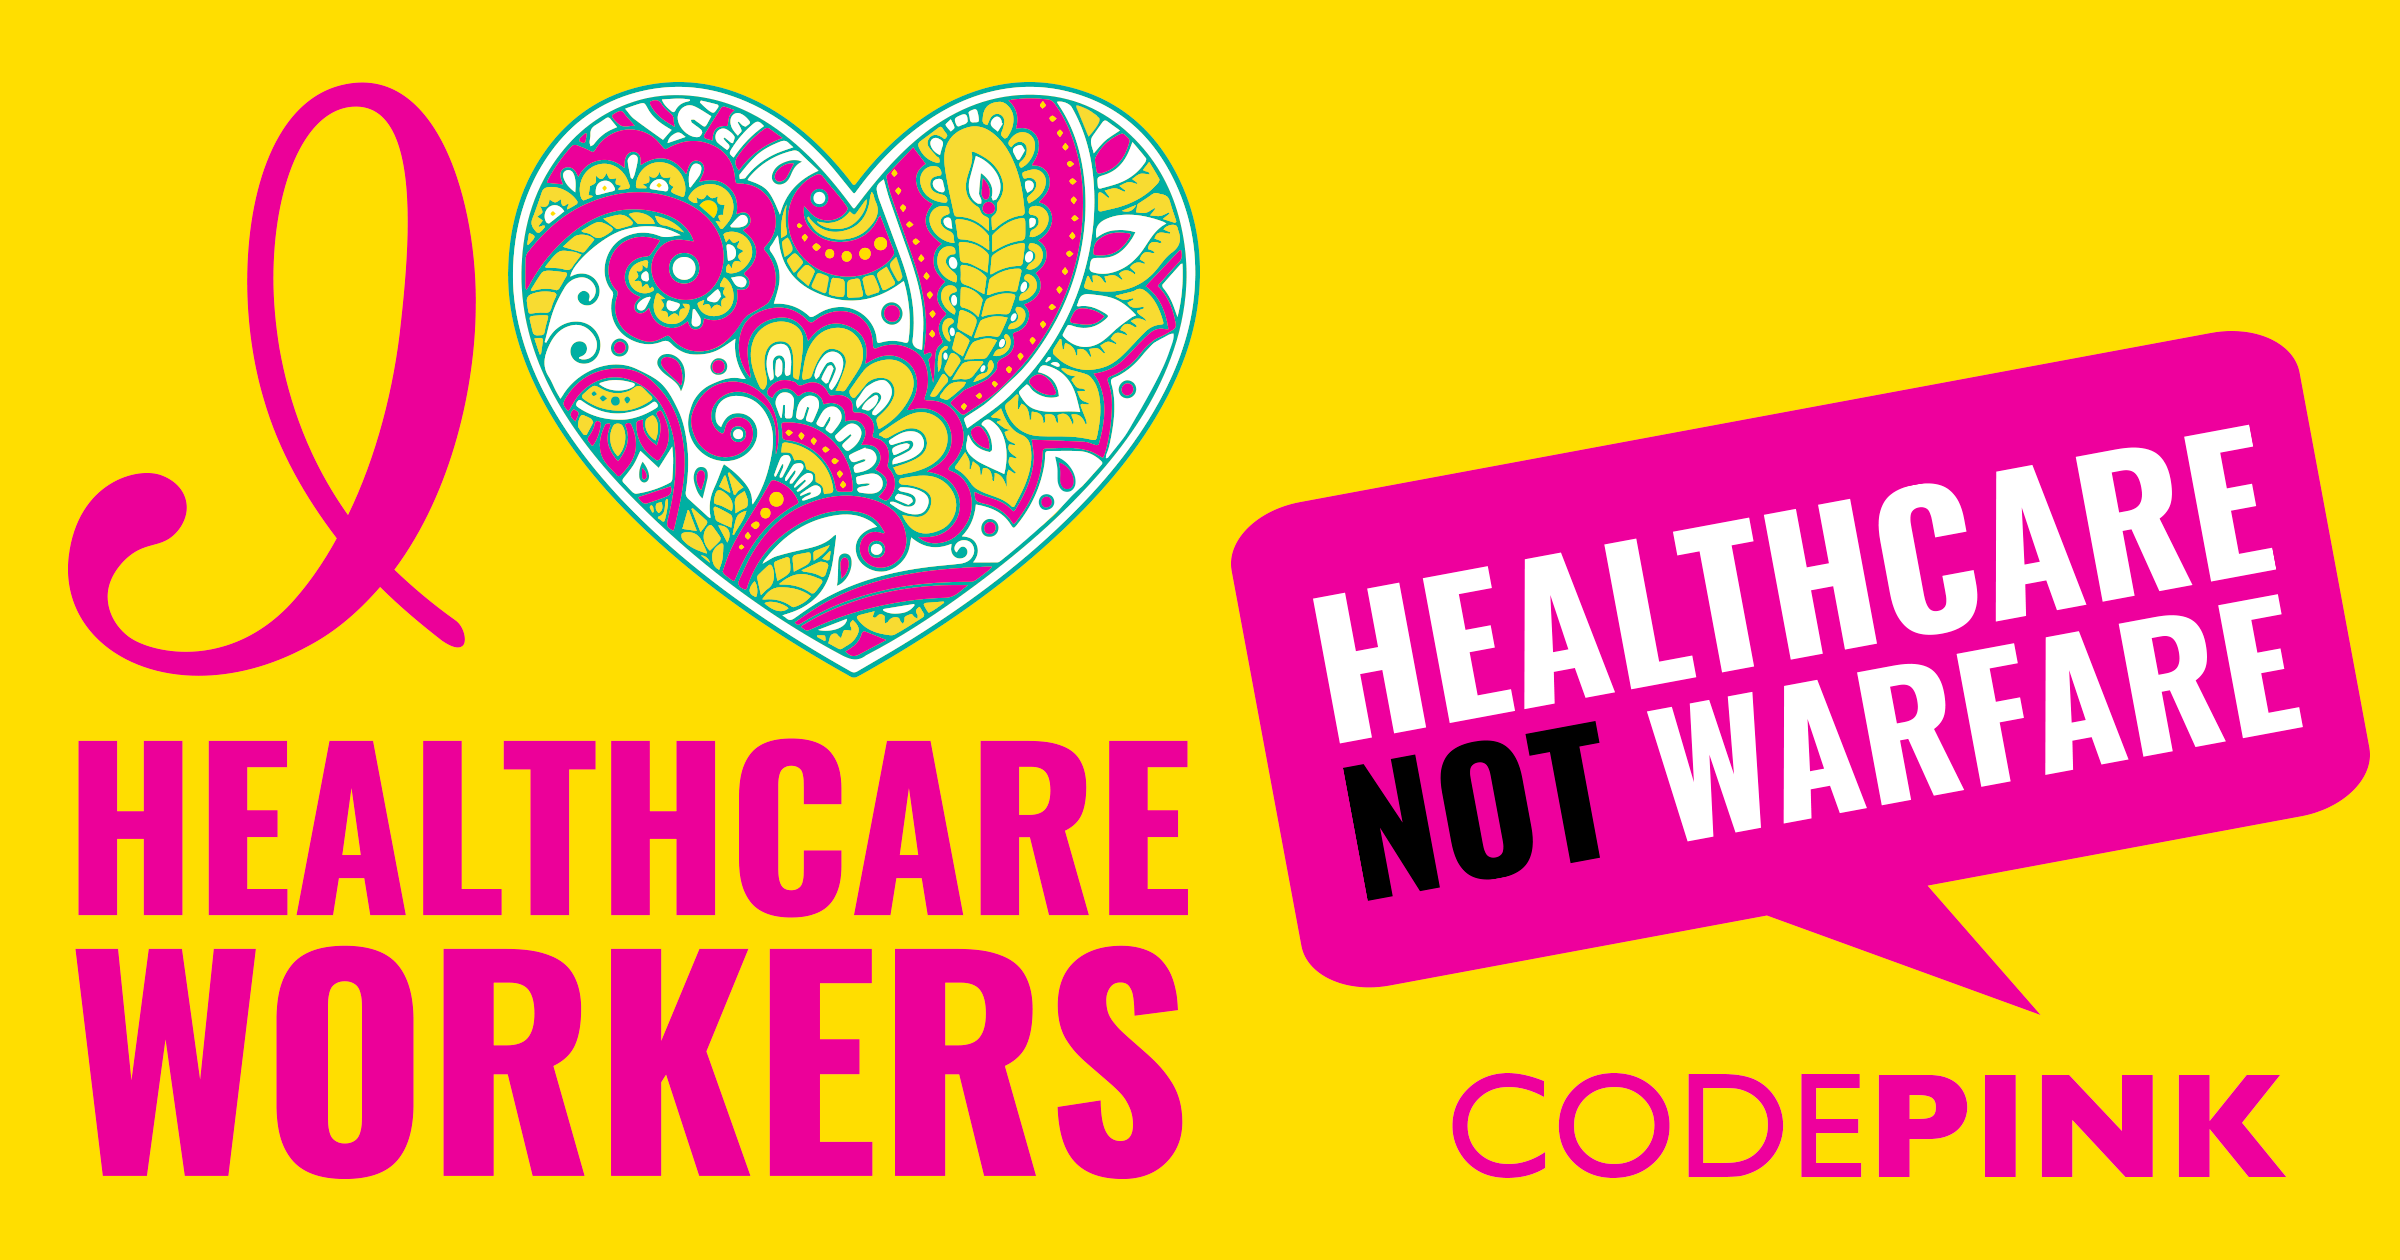 CODEPINK Statement on COVID-19 Pandemic - CODEPINK - Women for Peace